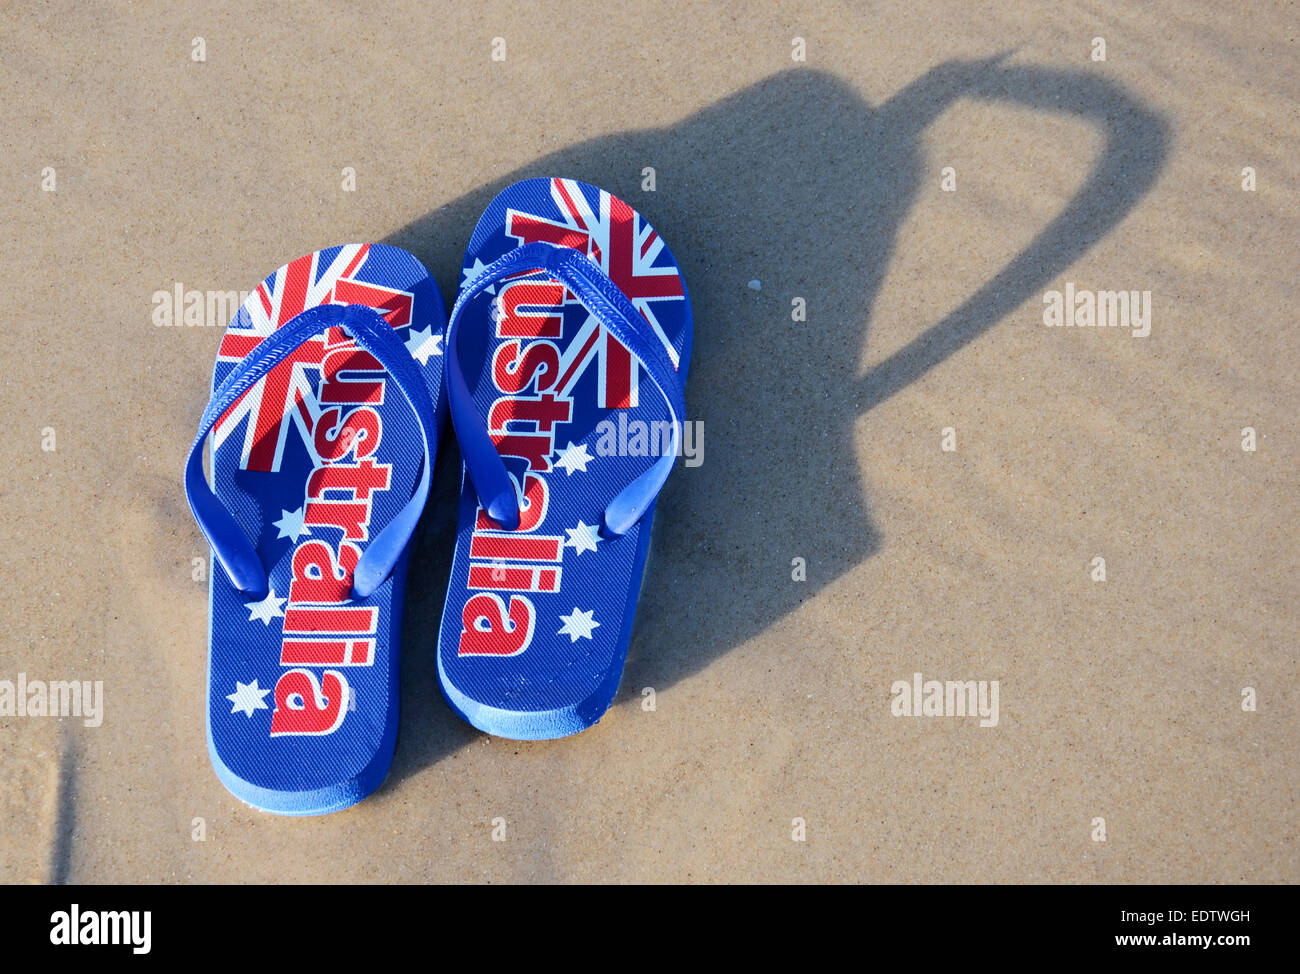 7bc8c3c273a6 Australian sandals flip flops thongs with Australian flag on wide sandy  beach in early morning sun. Taken in South Australia.